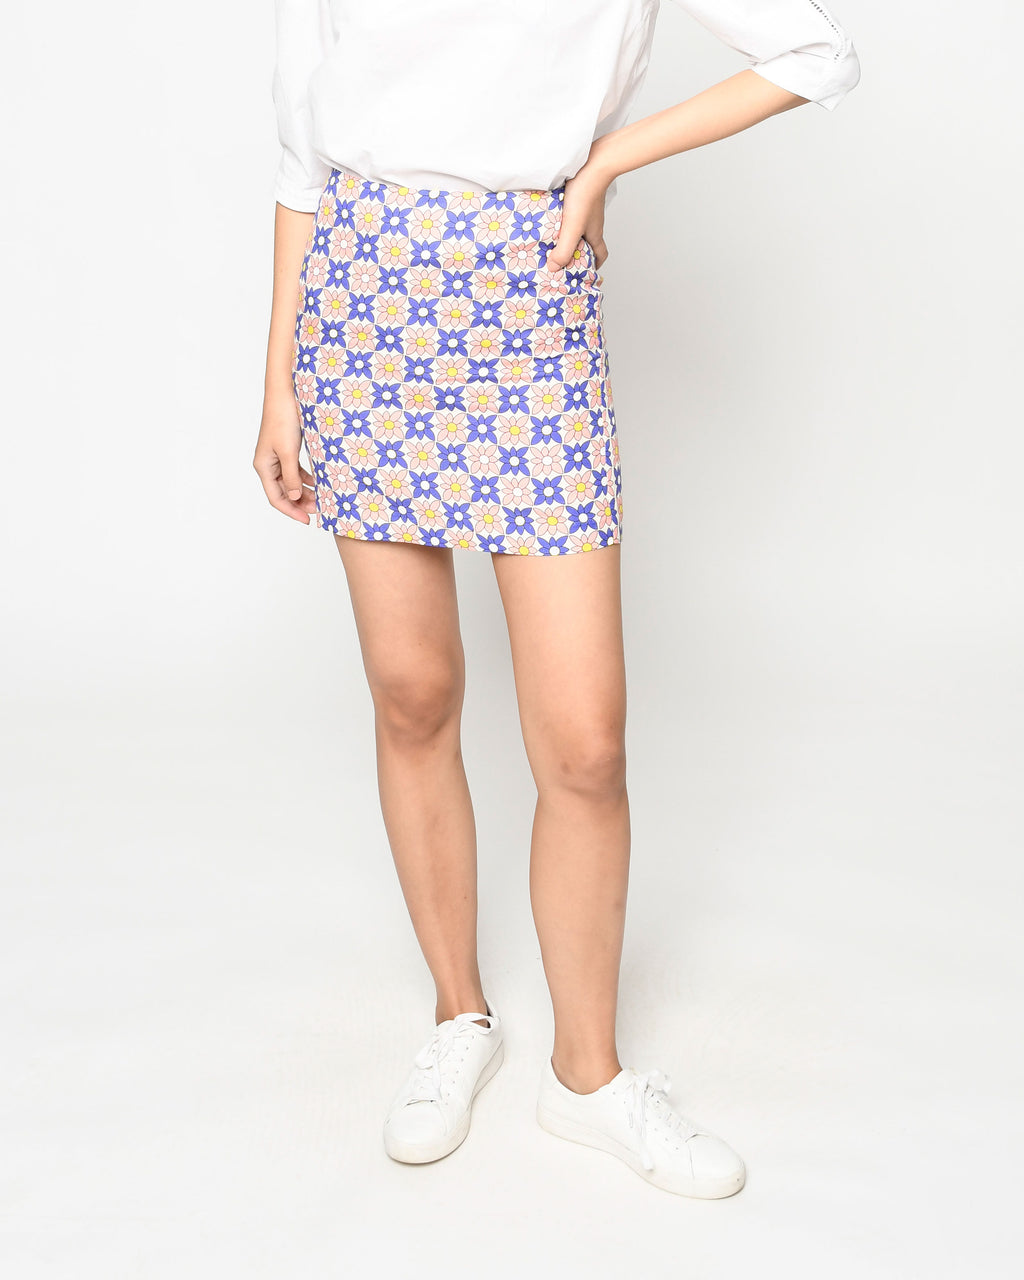 CS19052 - DAISY FIELD SCARF MINI SKIRT - bottoms - skirts - Our retro mini skirt is designed in one of our favorite bold prints for spring. The contrasting colors upgrade this classic silhouette. Add 1 line break Stylist Tip: Pair with a white tee or the matching top for a cute yet classic look.